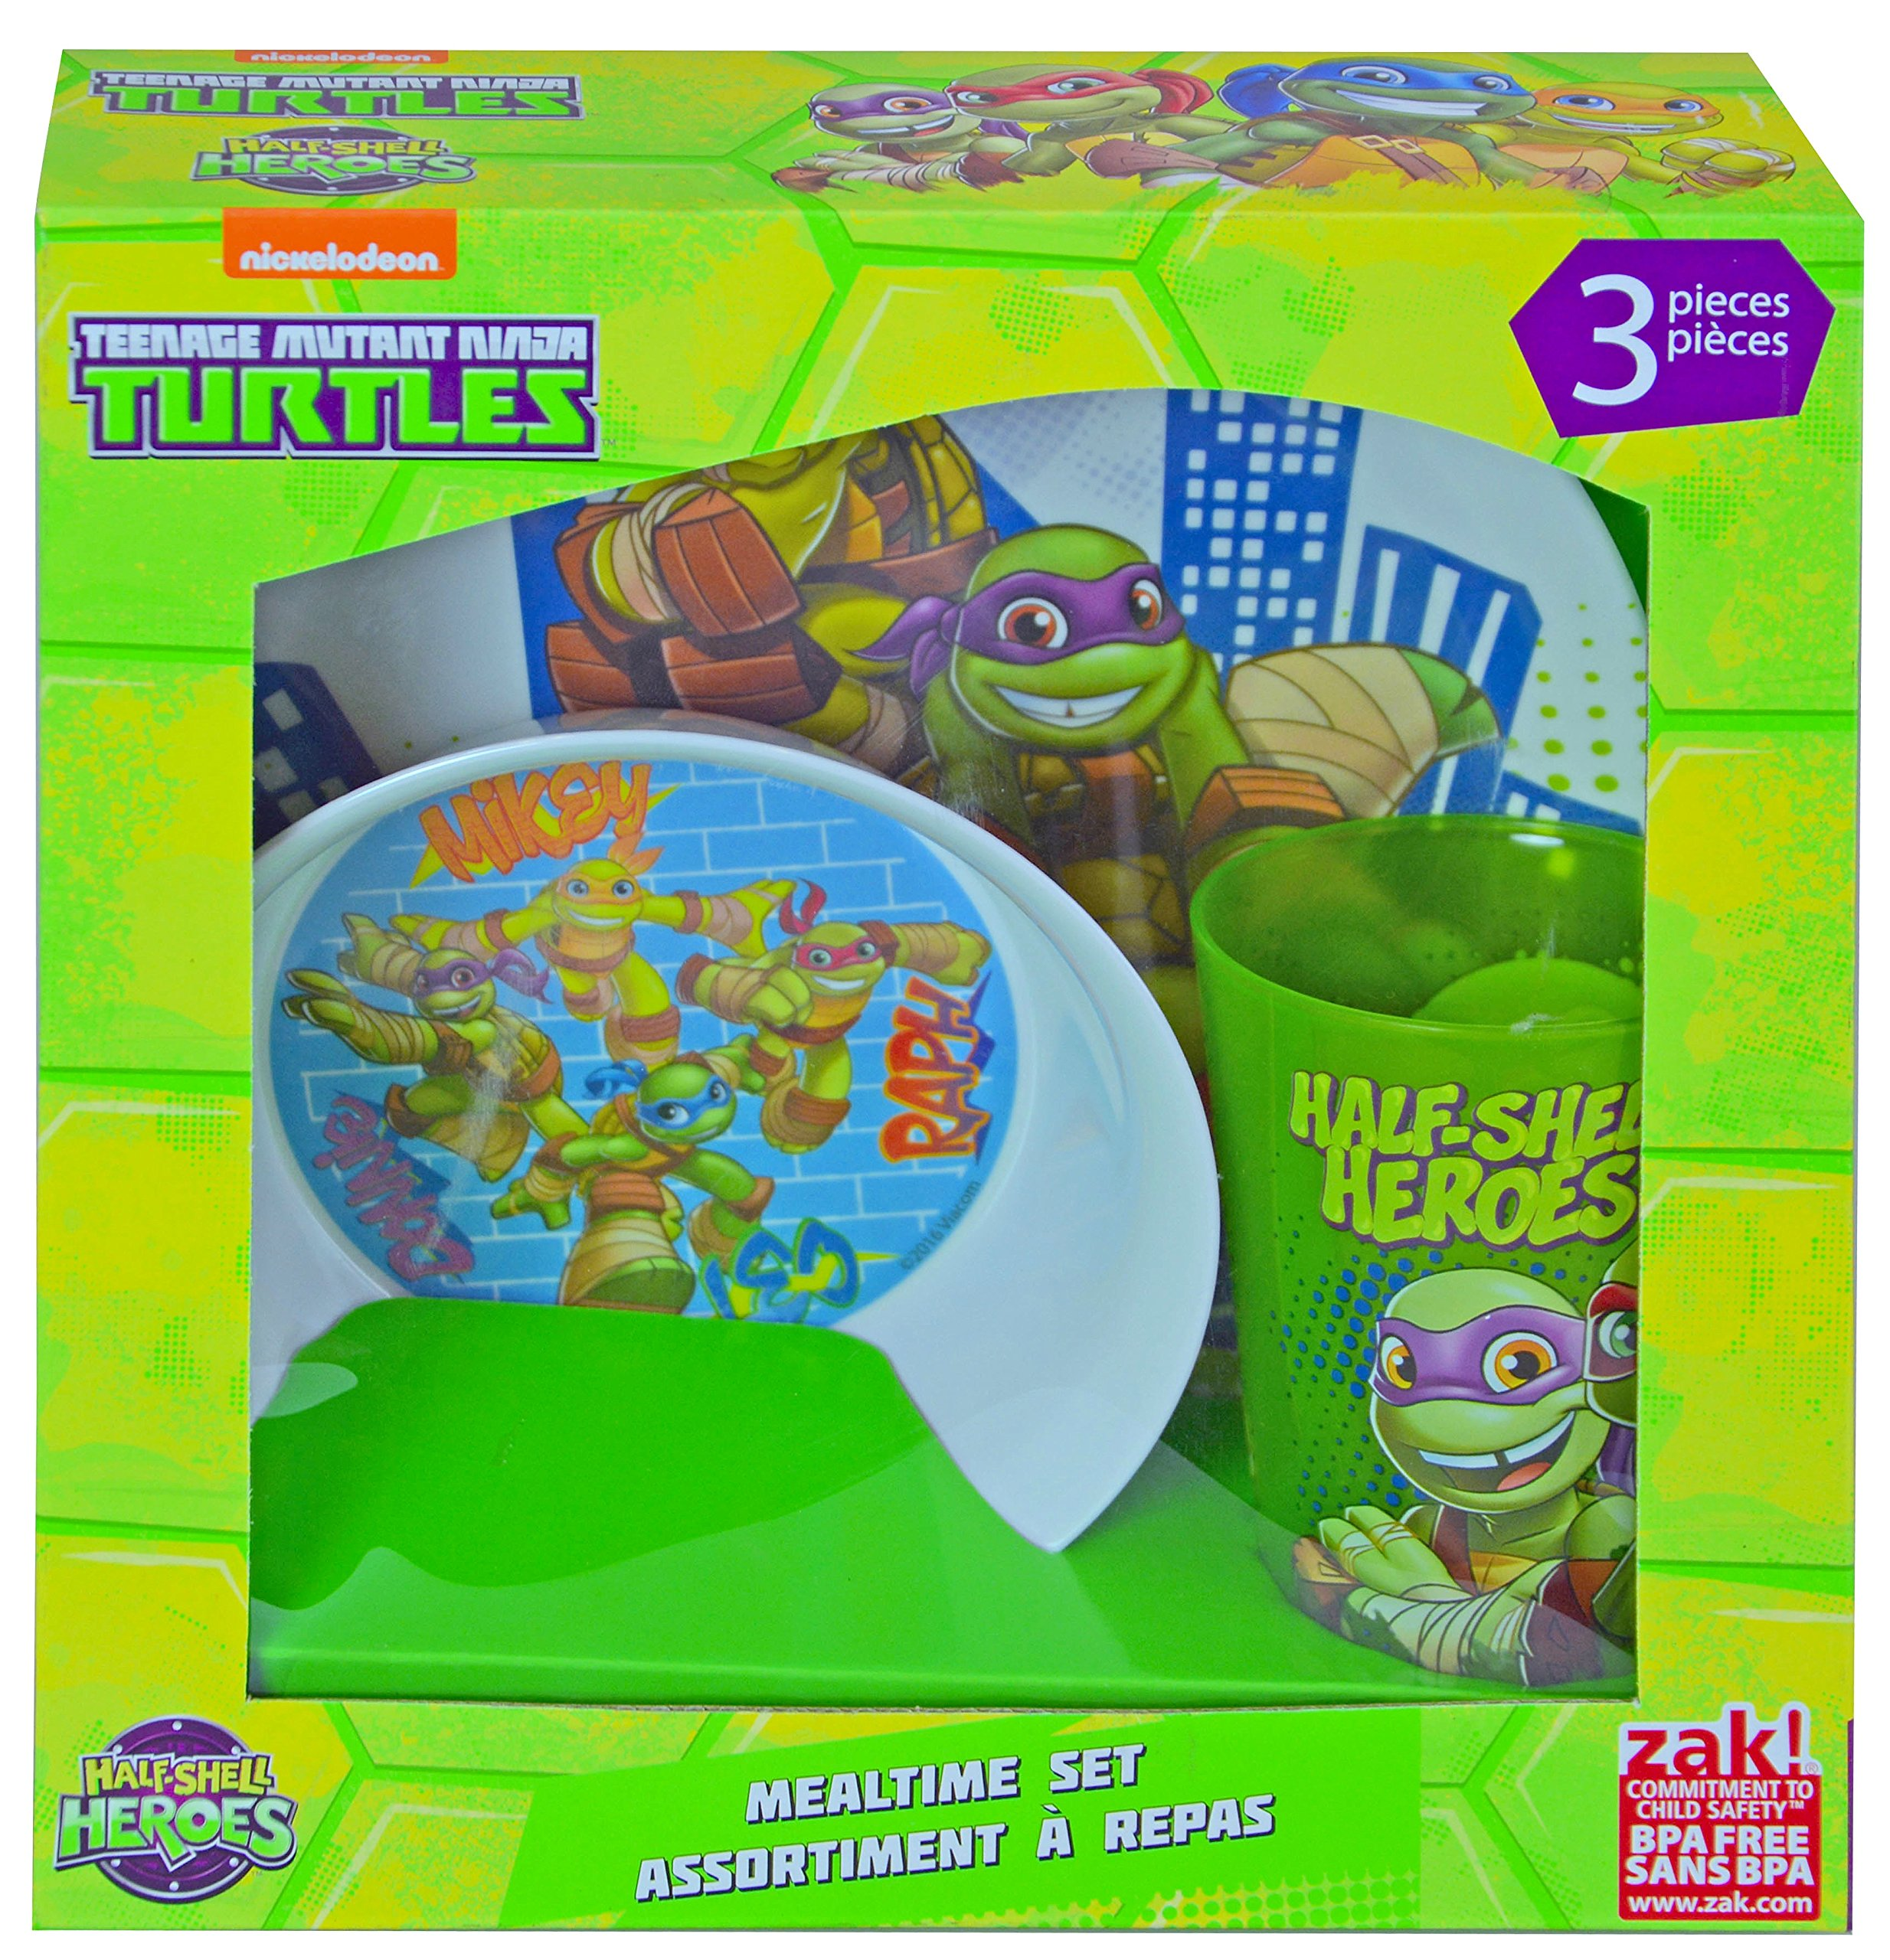 Teenage Mutant Ninja Turtles TMNT Half Shell Hero 3pc Dinnerware Window Box Set